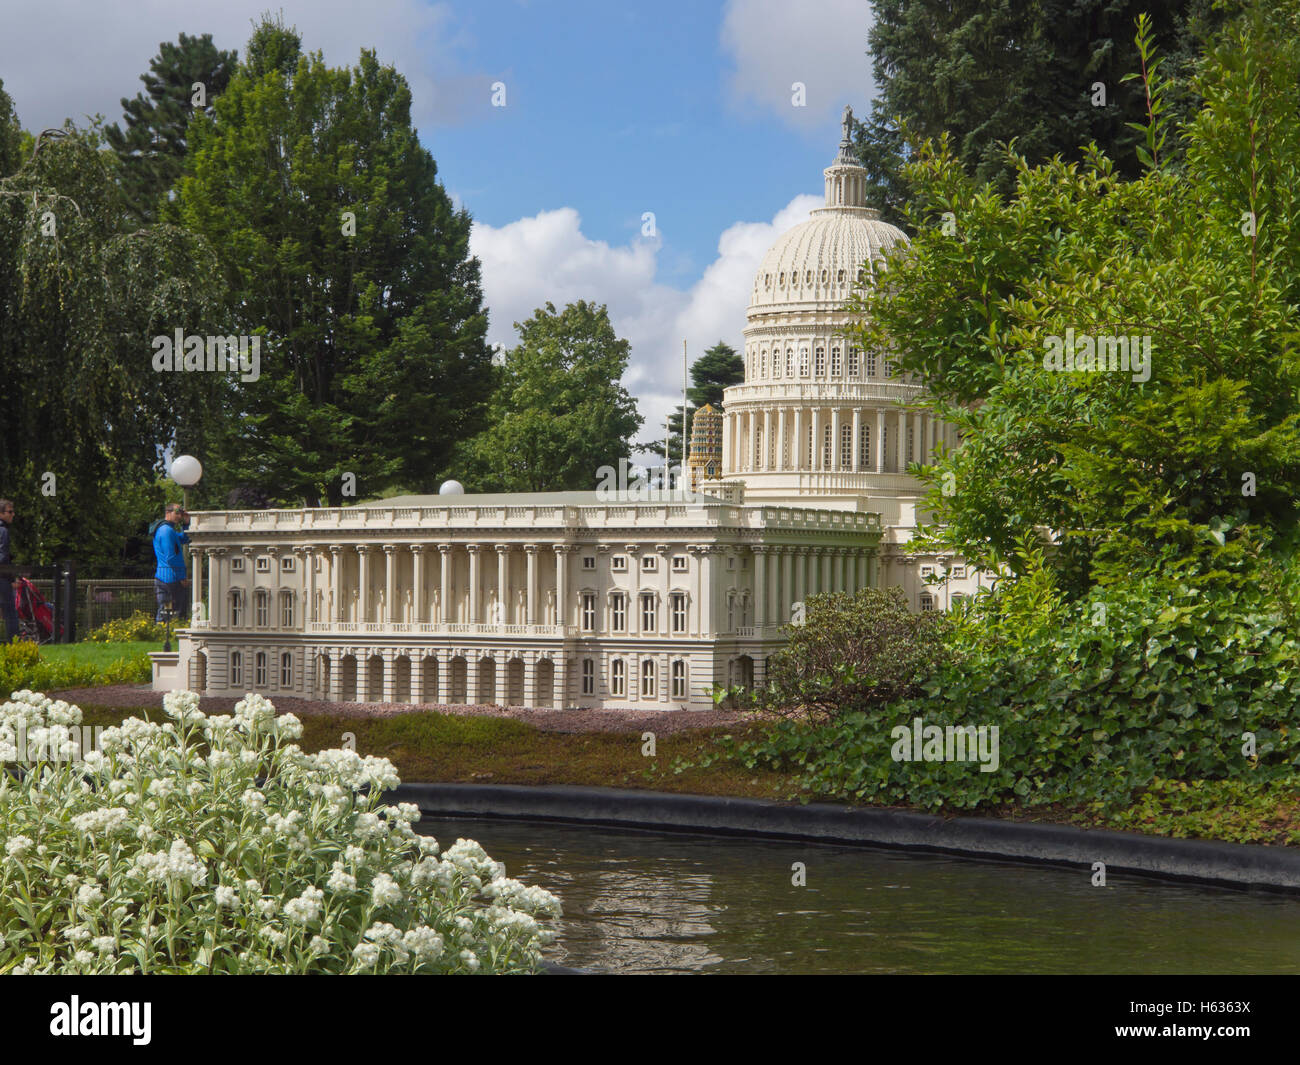 Take a boat ride in Legoland Billund Denmark, past the American Capitol building built from Lego bricks Stock Photo